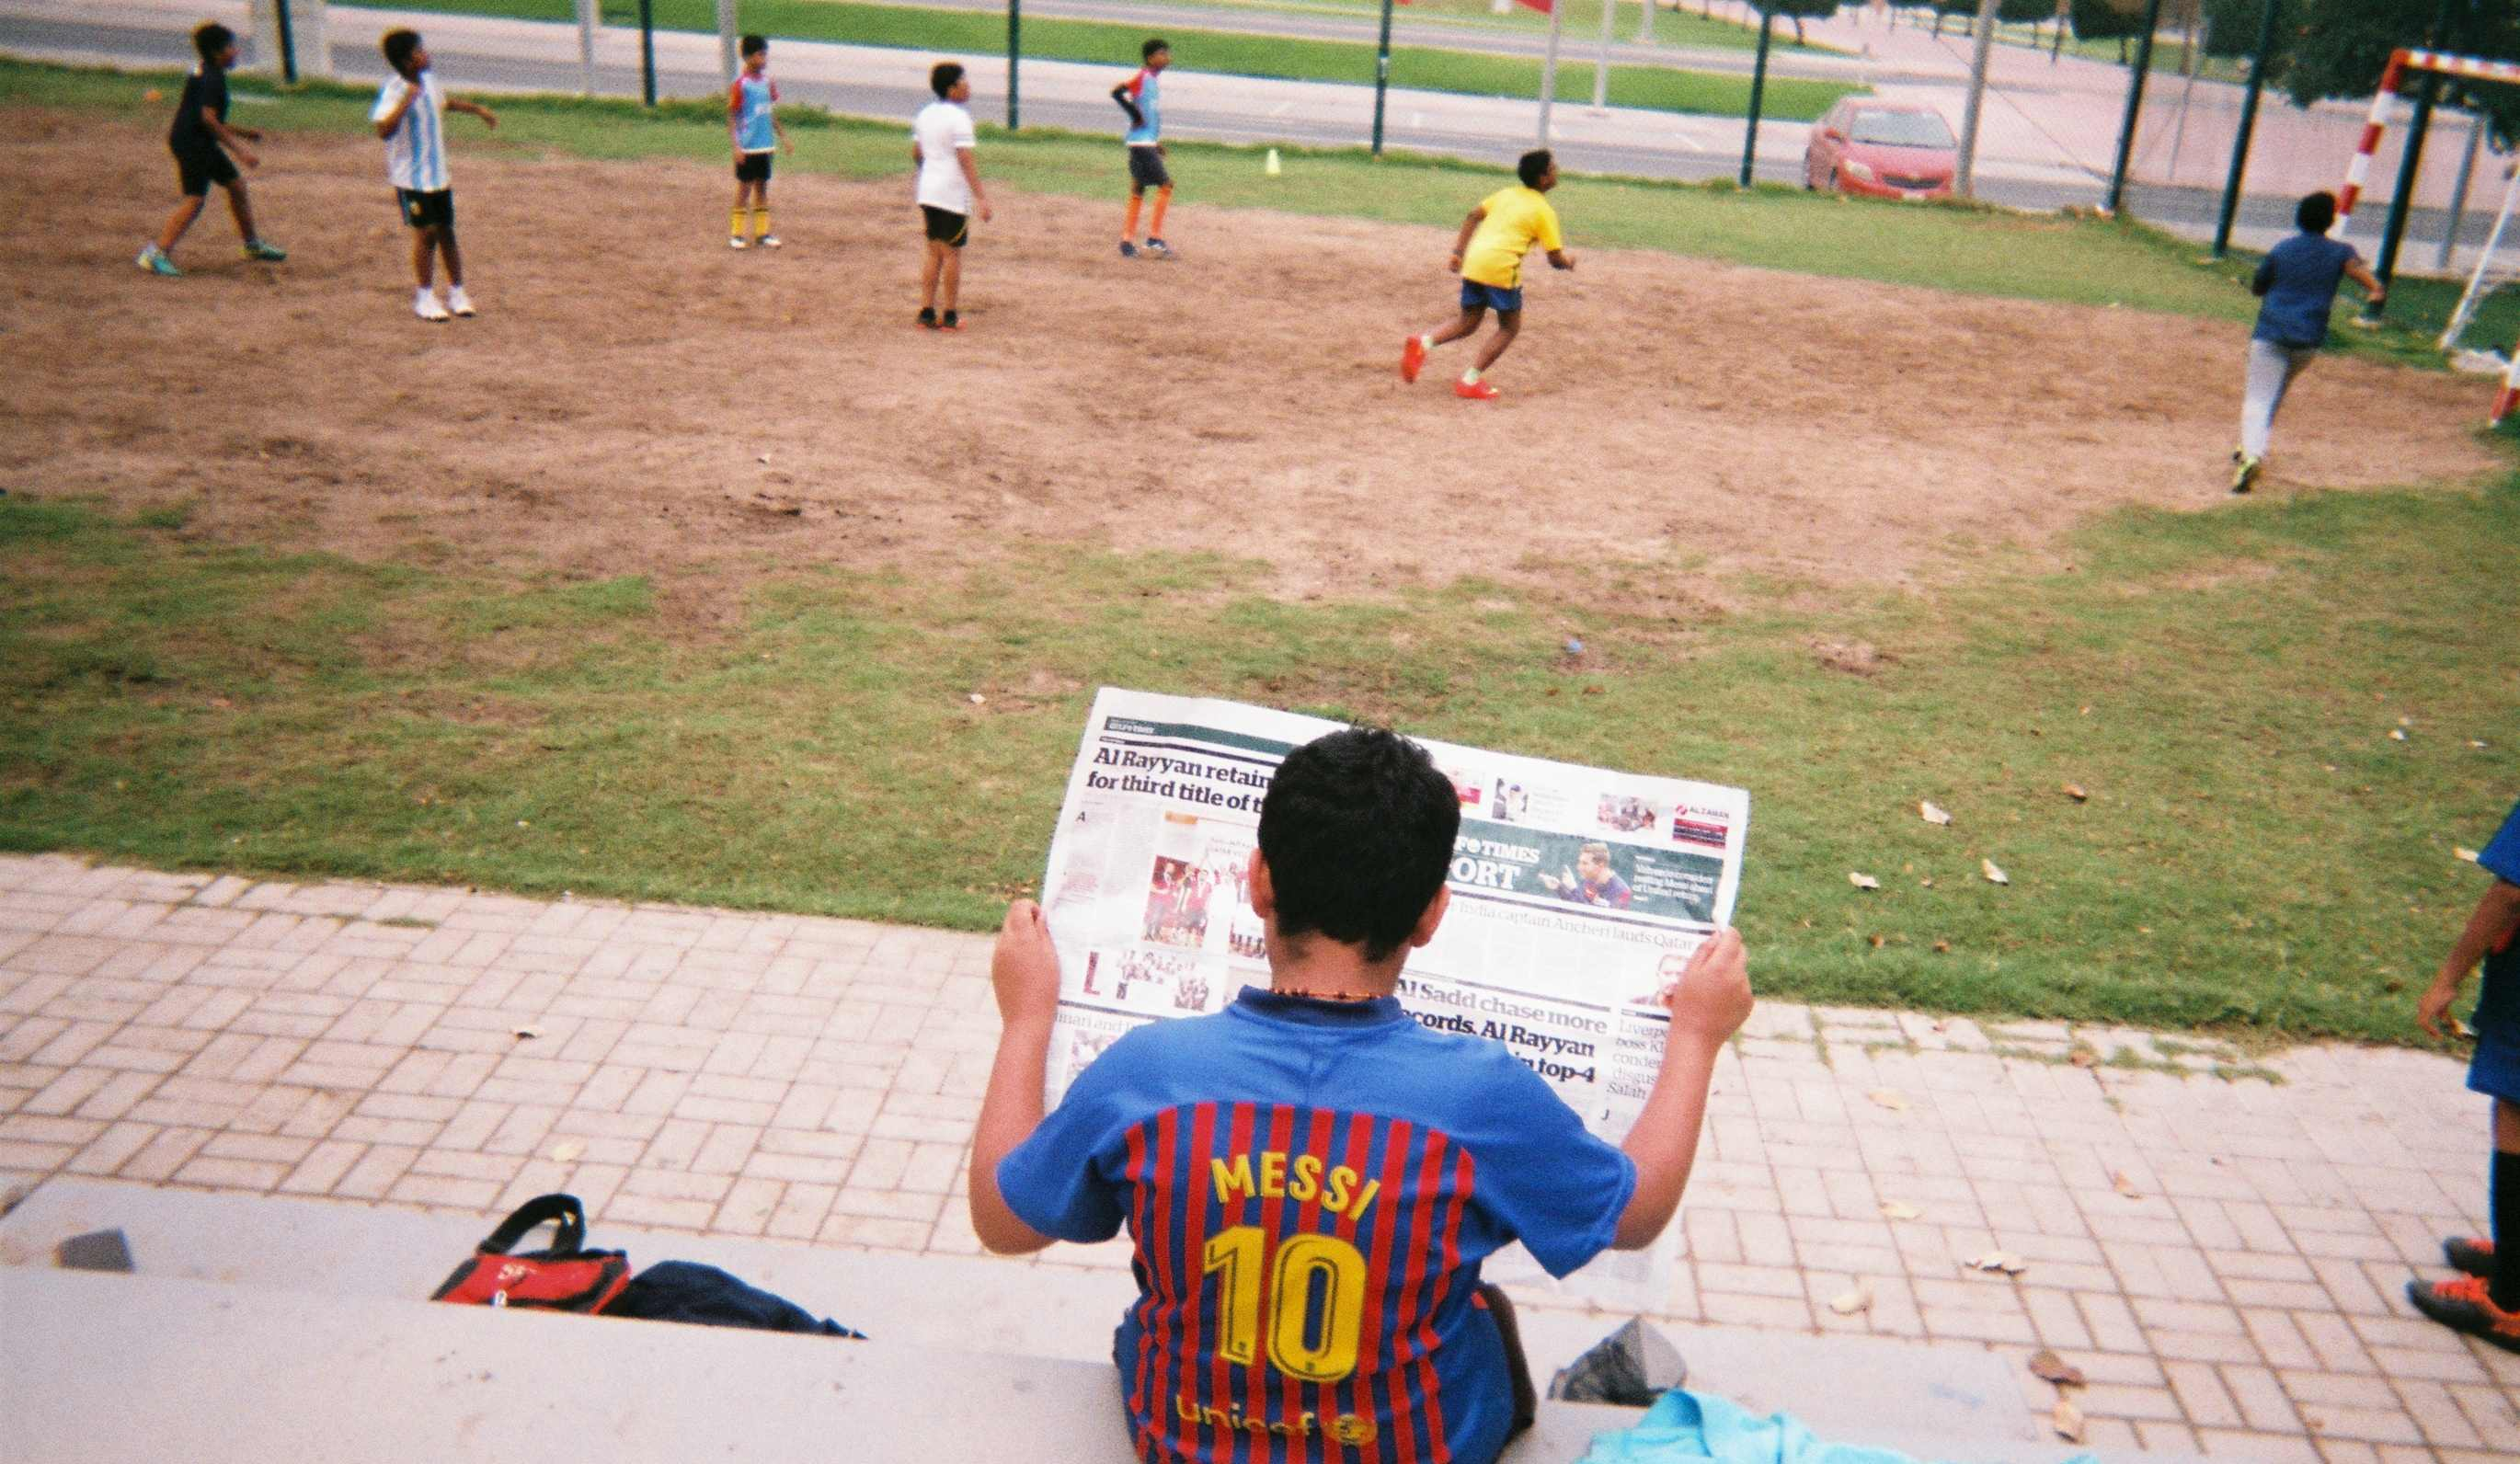 The photographs show the intimate realities of Qatari football culture from the perspective of workers, fans, journalists, coaches and both grassroots and professional players.